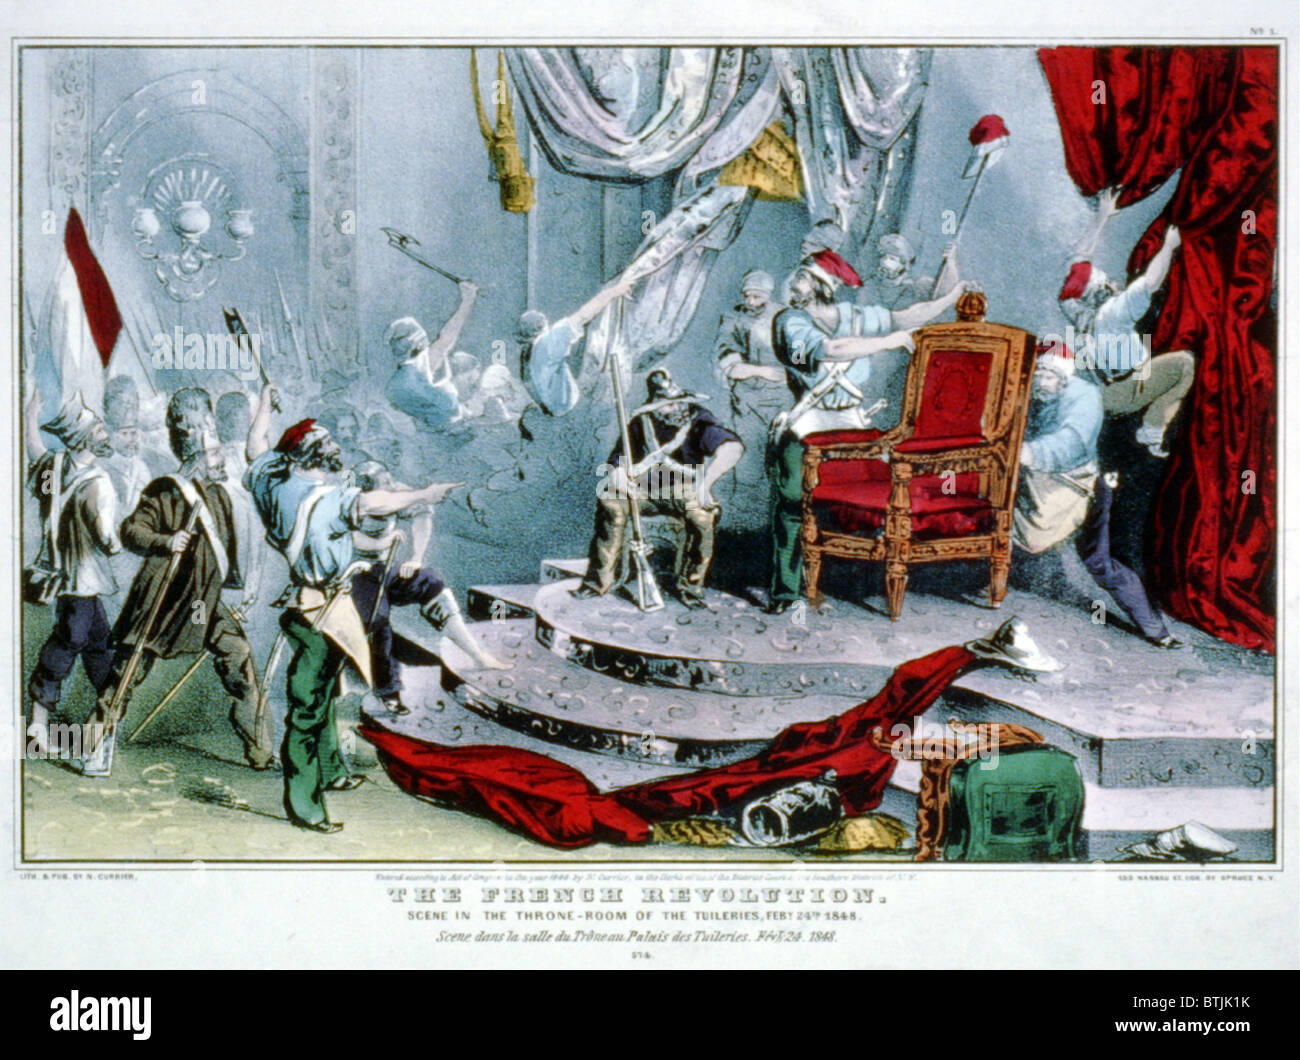 1848, The French revolution: scene in the throne-room of the Tuileries, Feby. 24th, 1848 - Stock Image